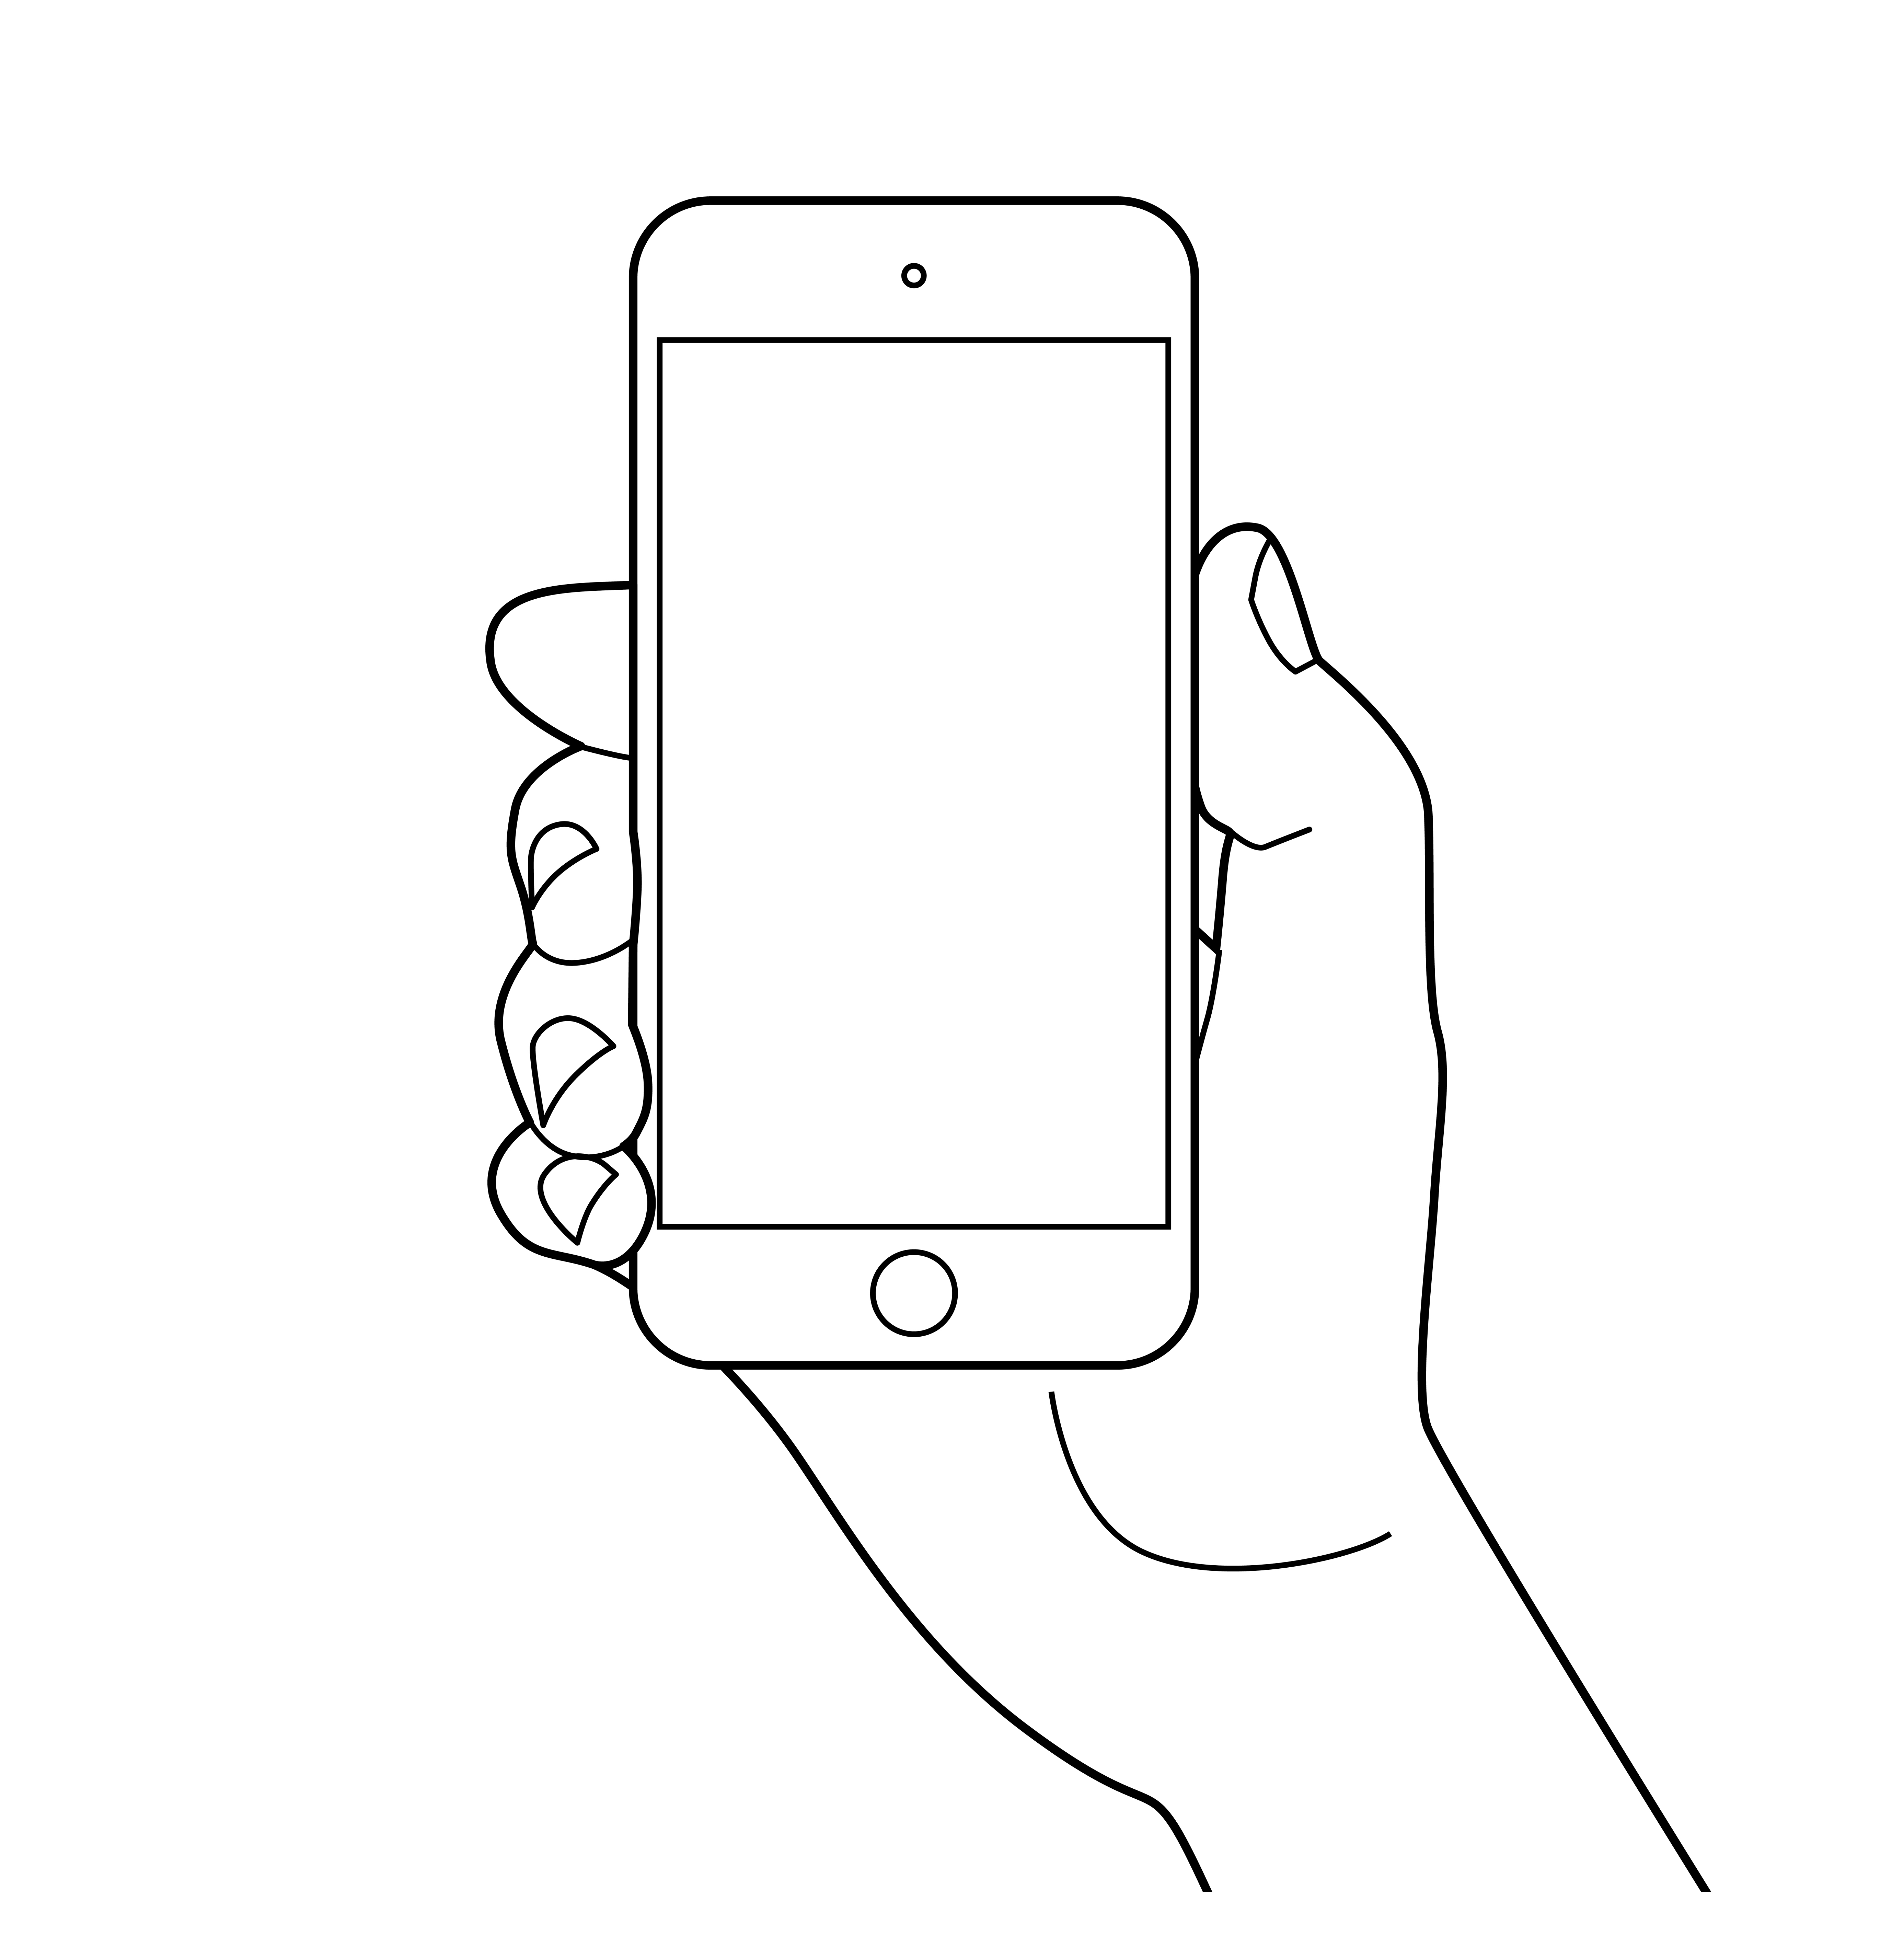 Hand holding smartphone. - Download Free Vectors, Clipart ...